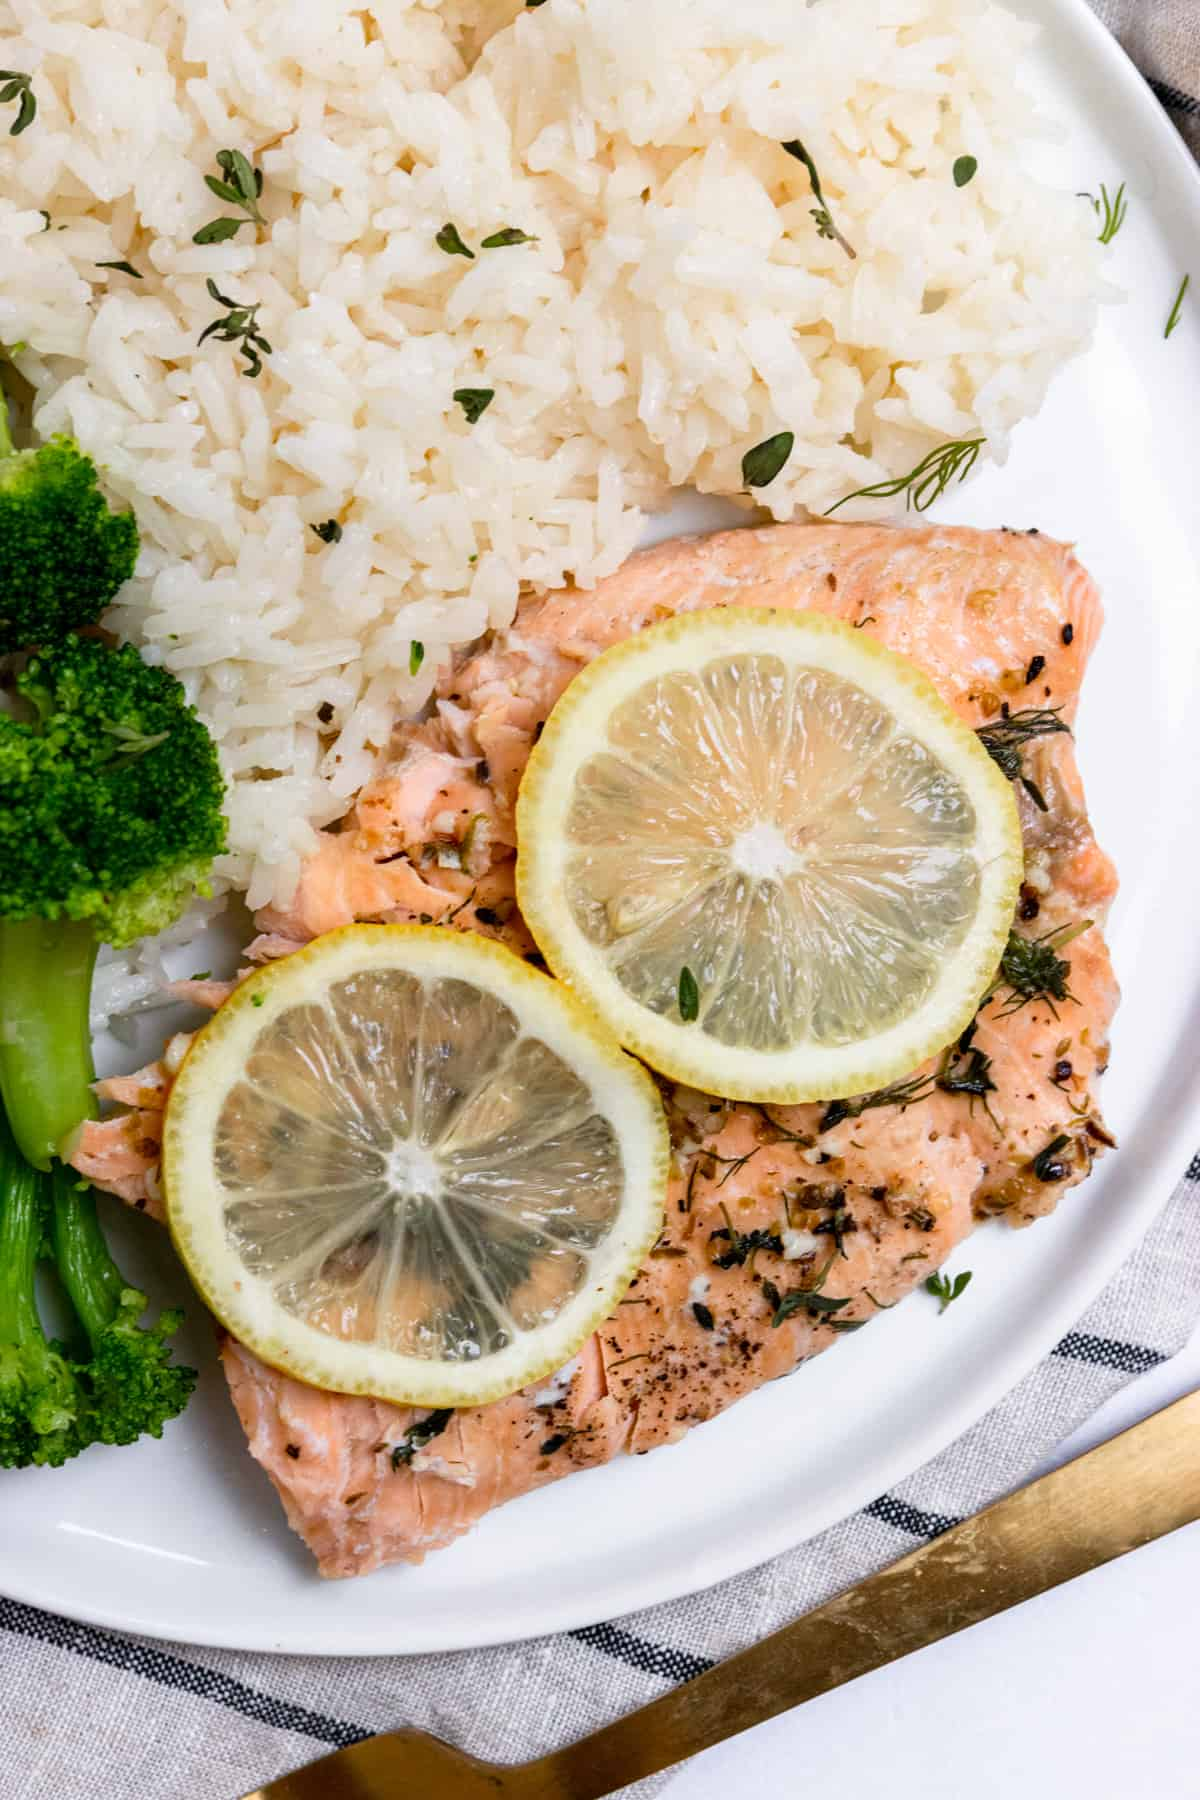 Overhead shot of salmon with rice and broccoli.